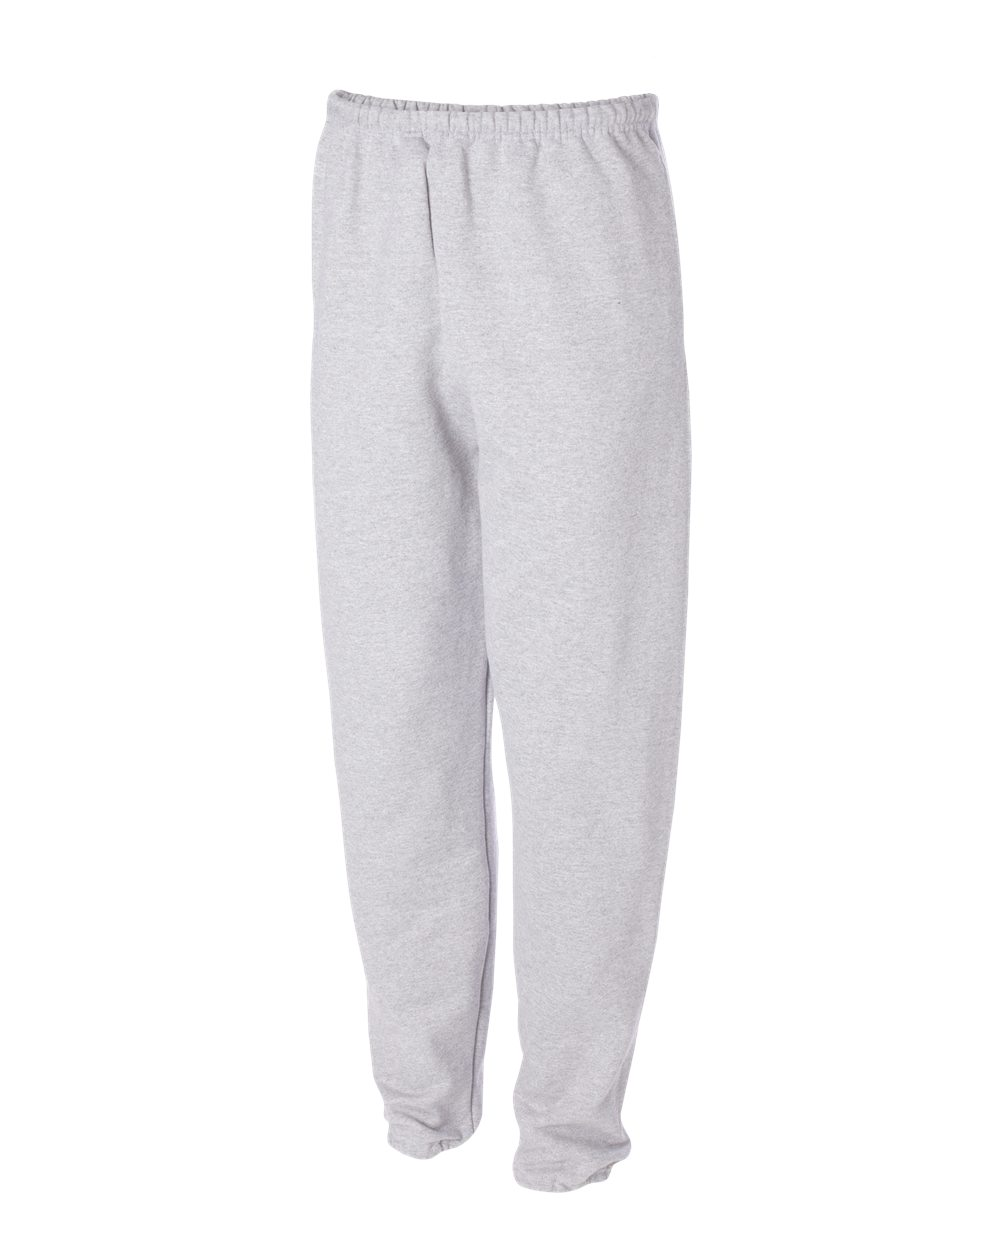 JERZEES 4850MR - NuBlend SUPER SWEATS Pocketed Sweatpants